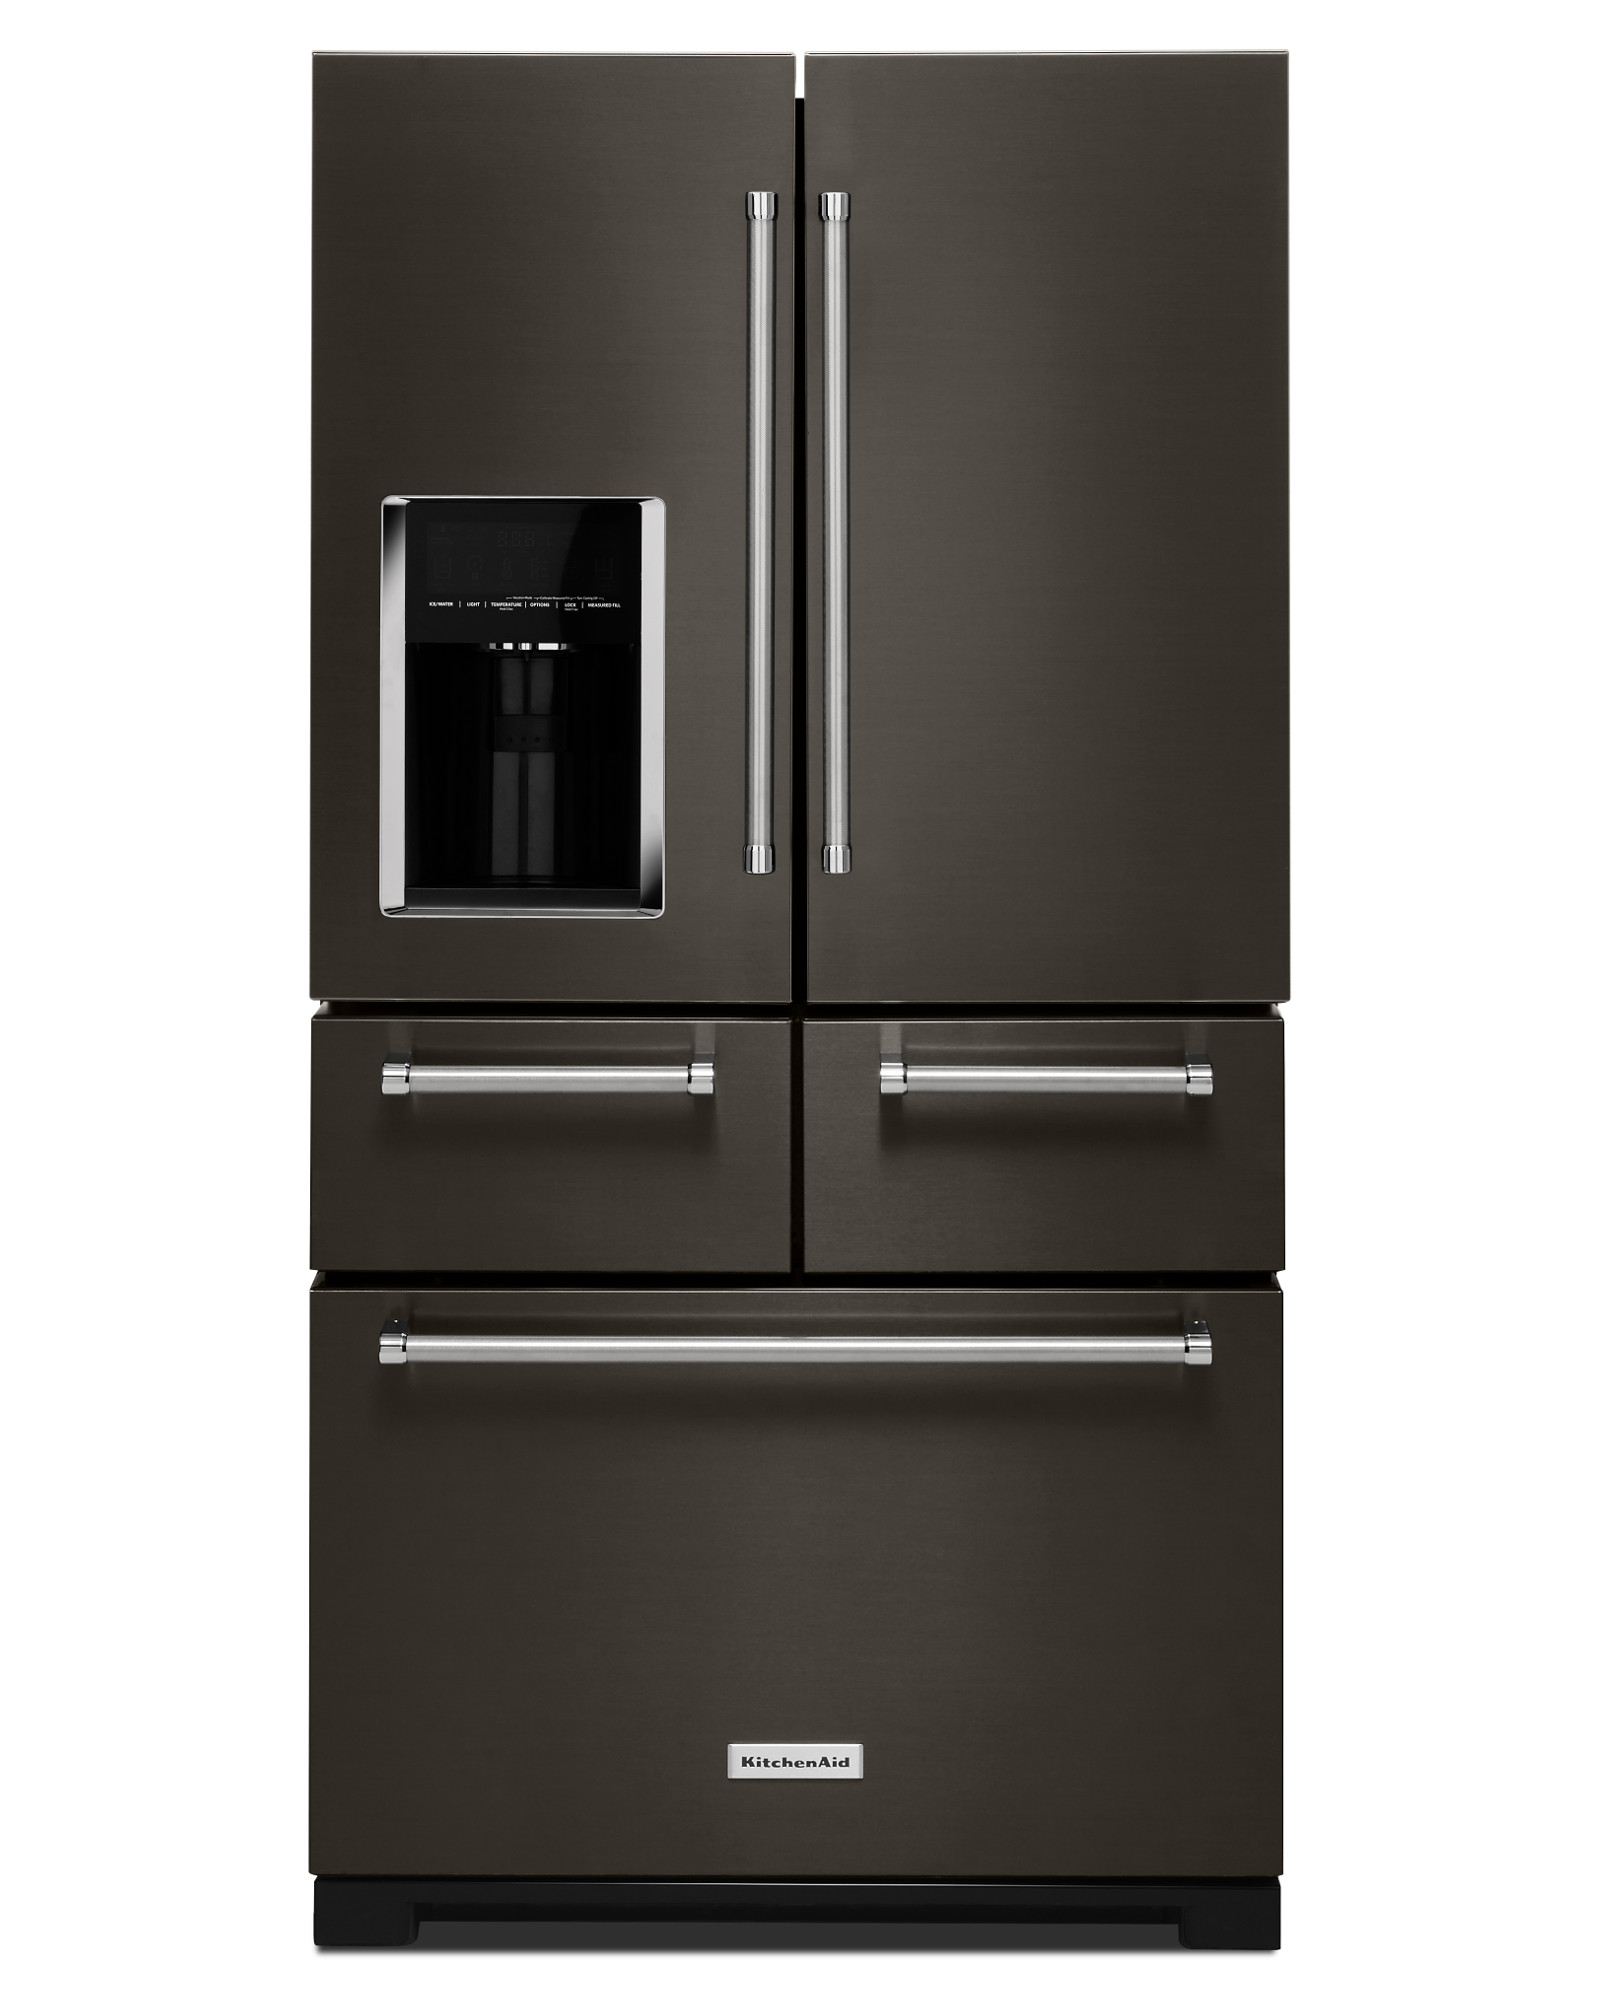 KitchenAid KRMF706EBS 25.8 cu. ft. 36 Multi-Door Freestanding Refrigerator - Black Stainless